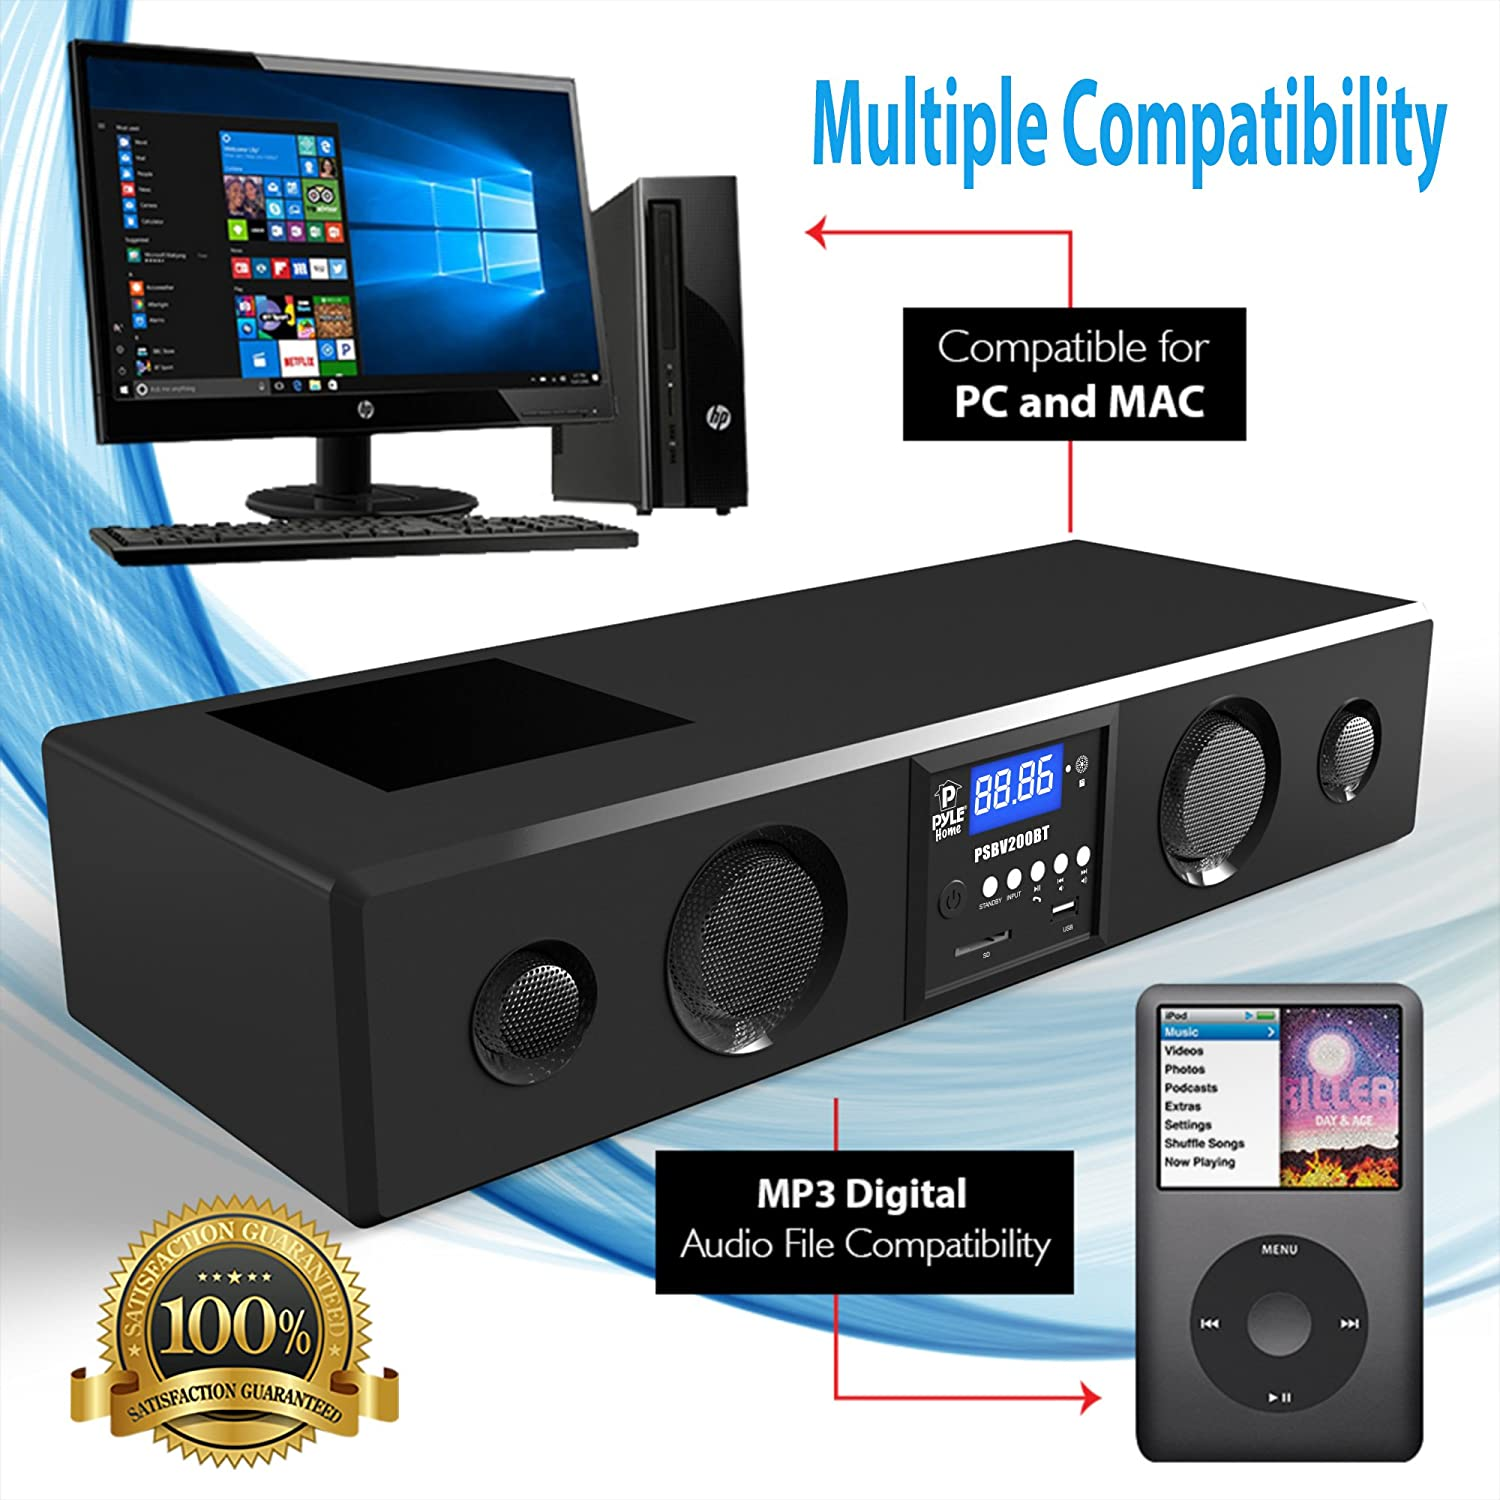 Pyle 3d Surround Bluetooth Soundbar Sound System Details About 4 Channel Car Amplifier Wiring Kit8quot Speakerspyle Compatible To Tv Usb Sd Fm Radio With 35mm Aux Input And Wireless Remote Psbv200bt Home Audio Theater